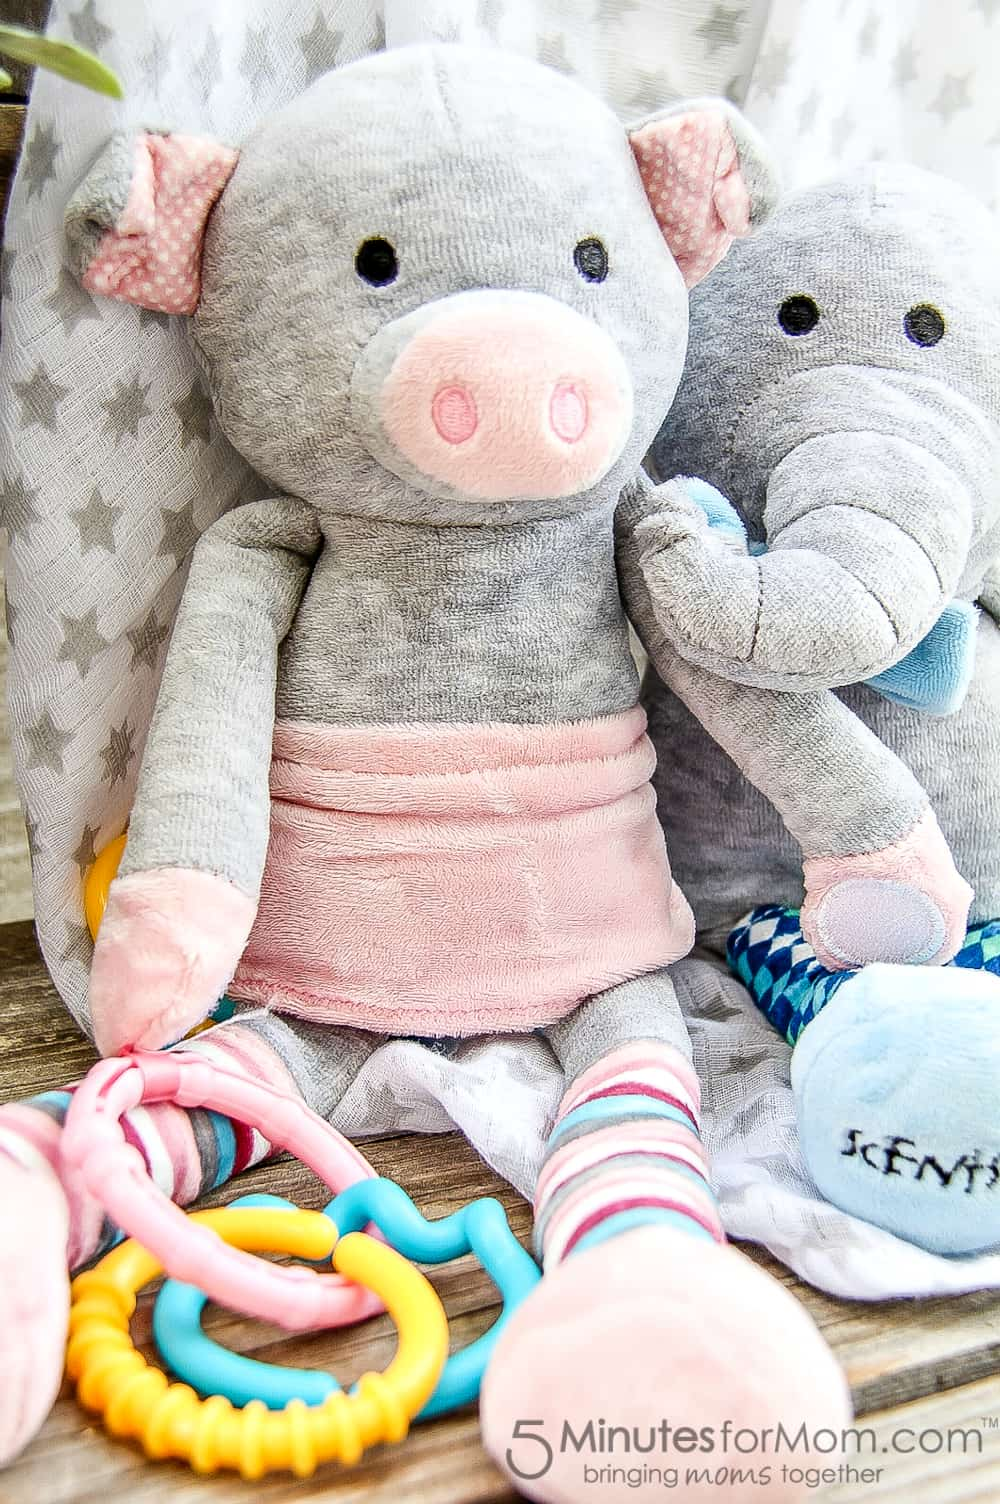 pippy-the-pig-and-eddy-the-elephant-are-the-new-scentsy-sidekicks-and-make-perfect-baby-shower-gifts